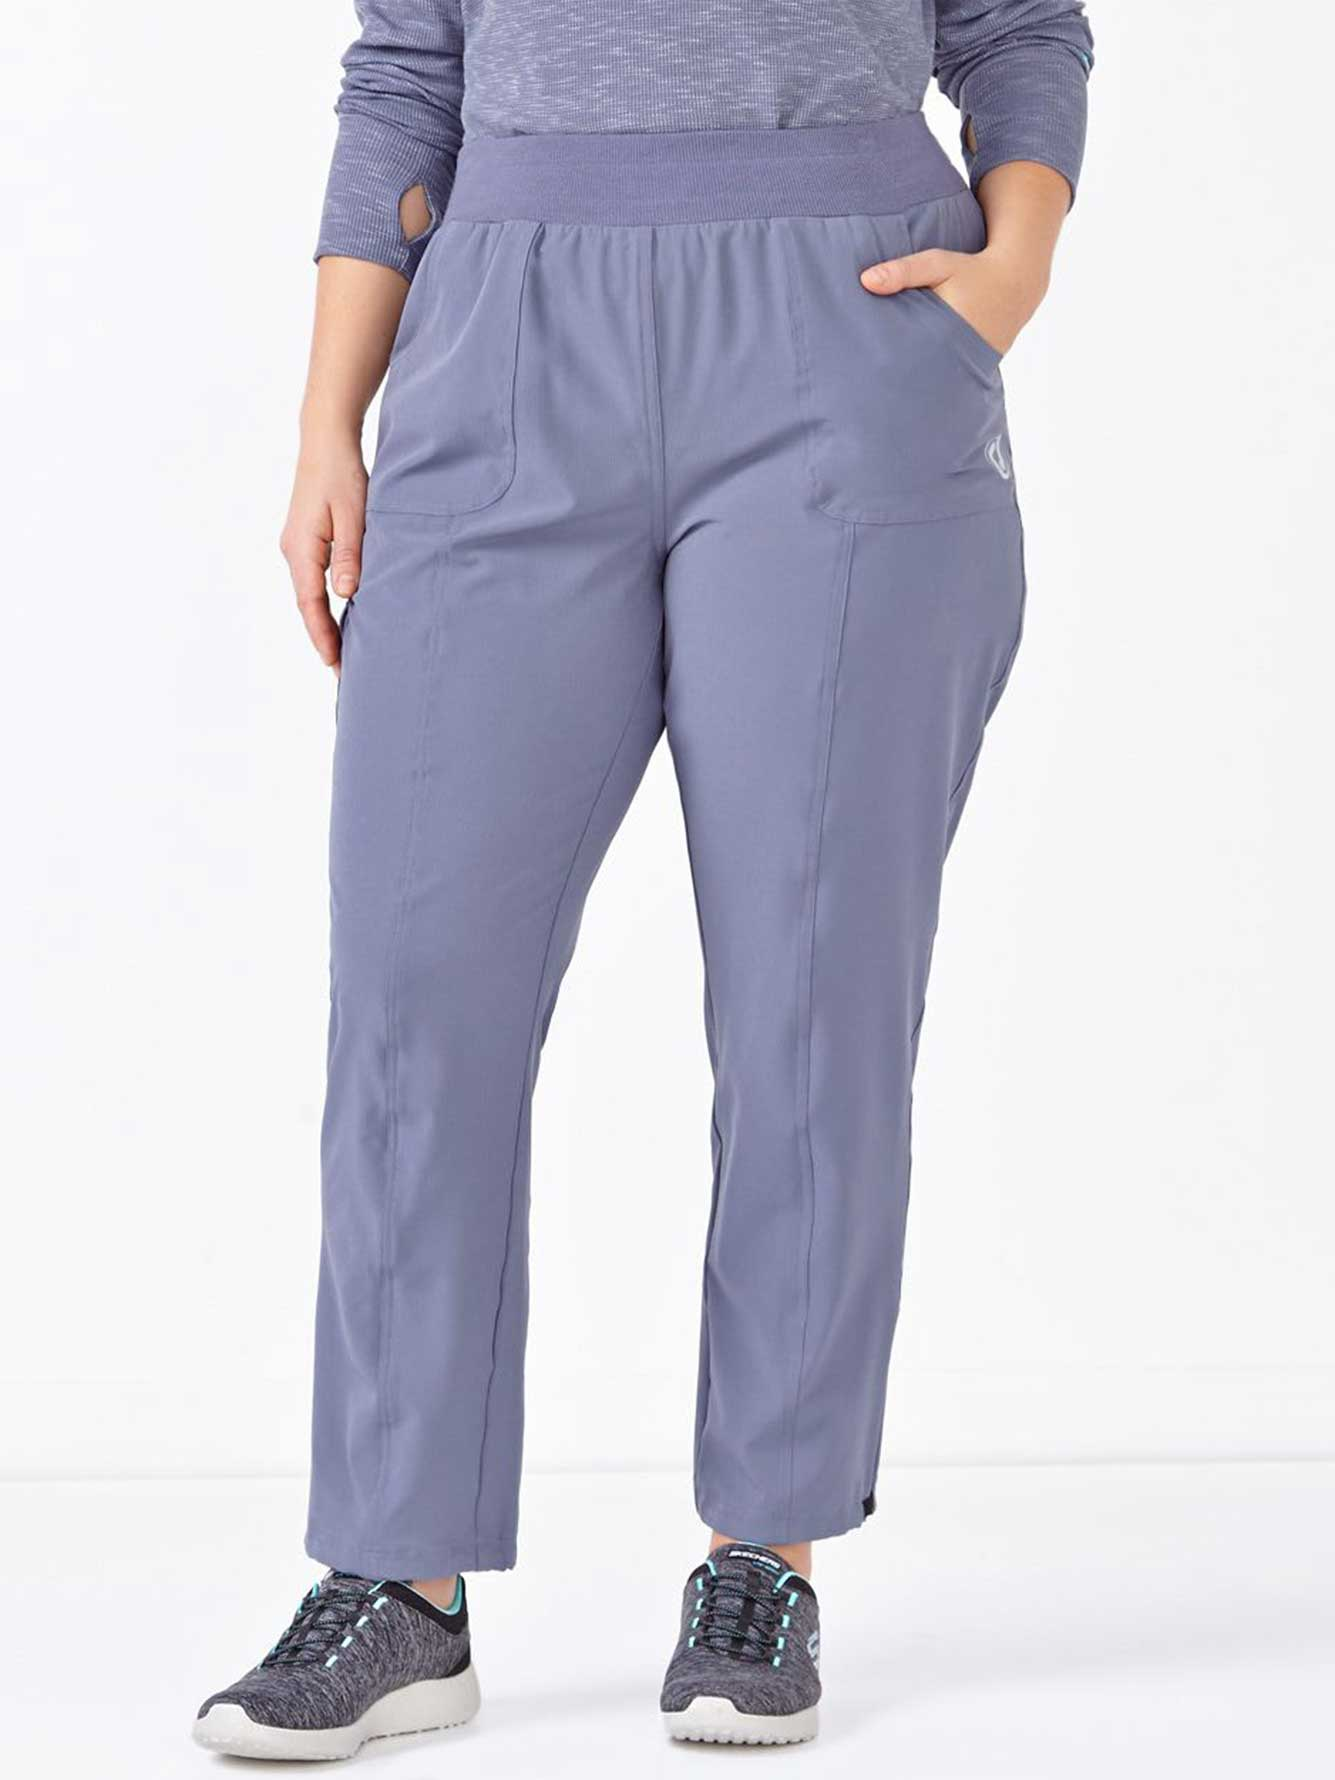 a395c9bf466 ... Plus-Size Stretch Pant. tap to zoom